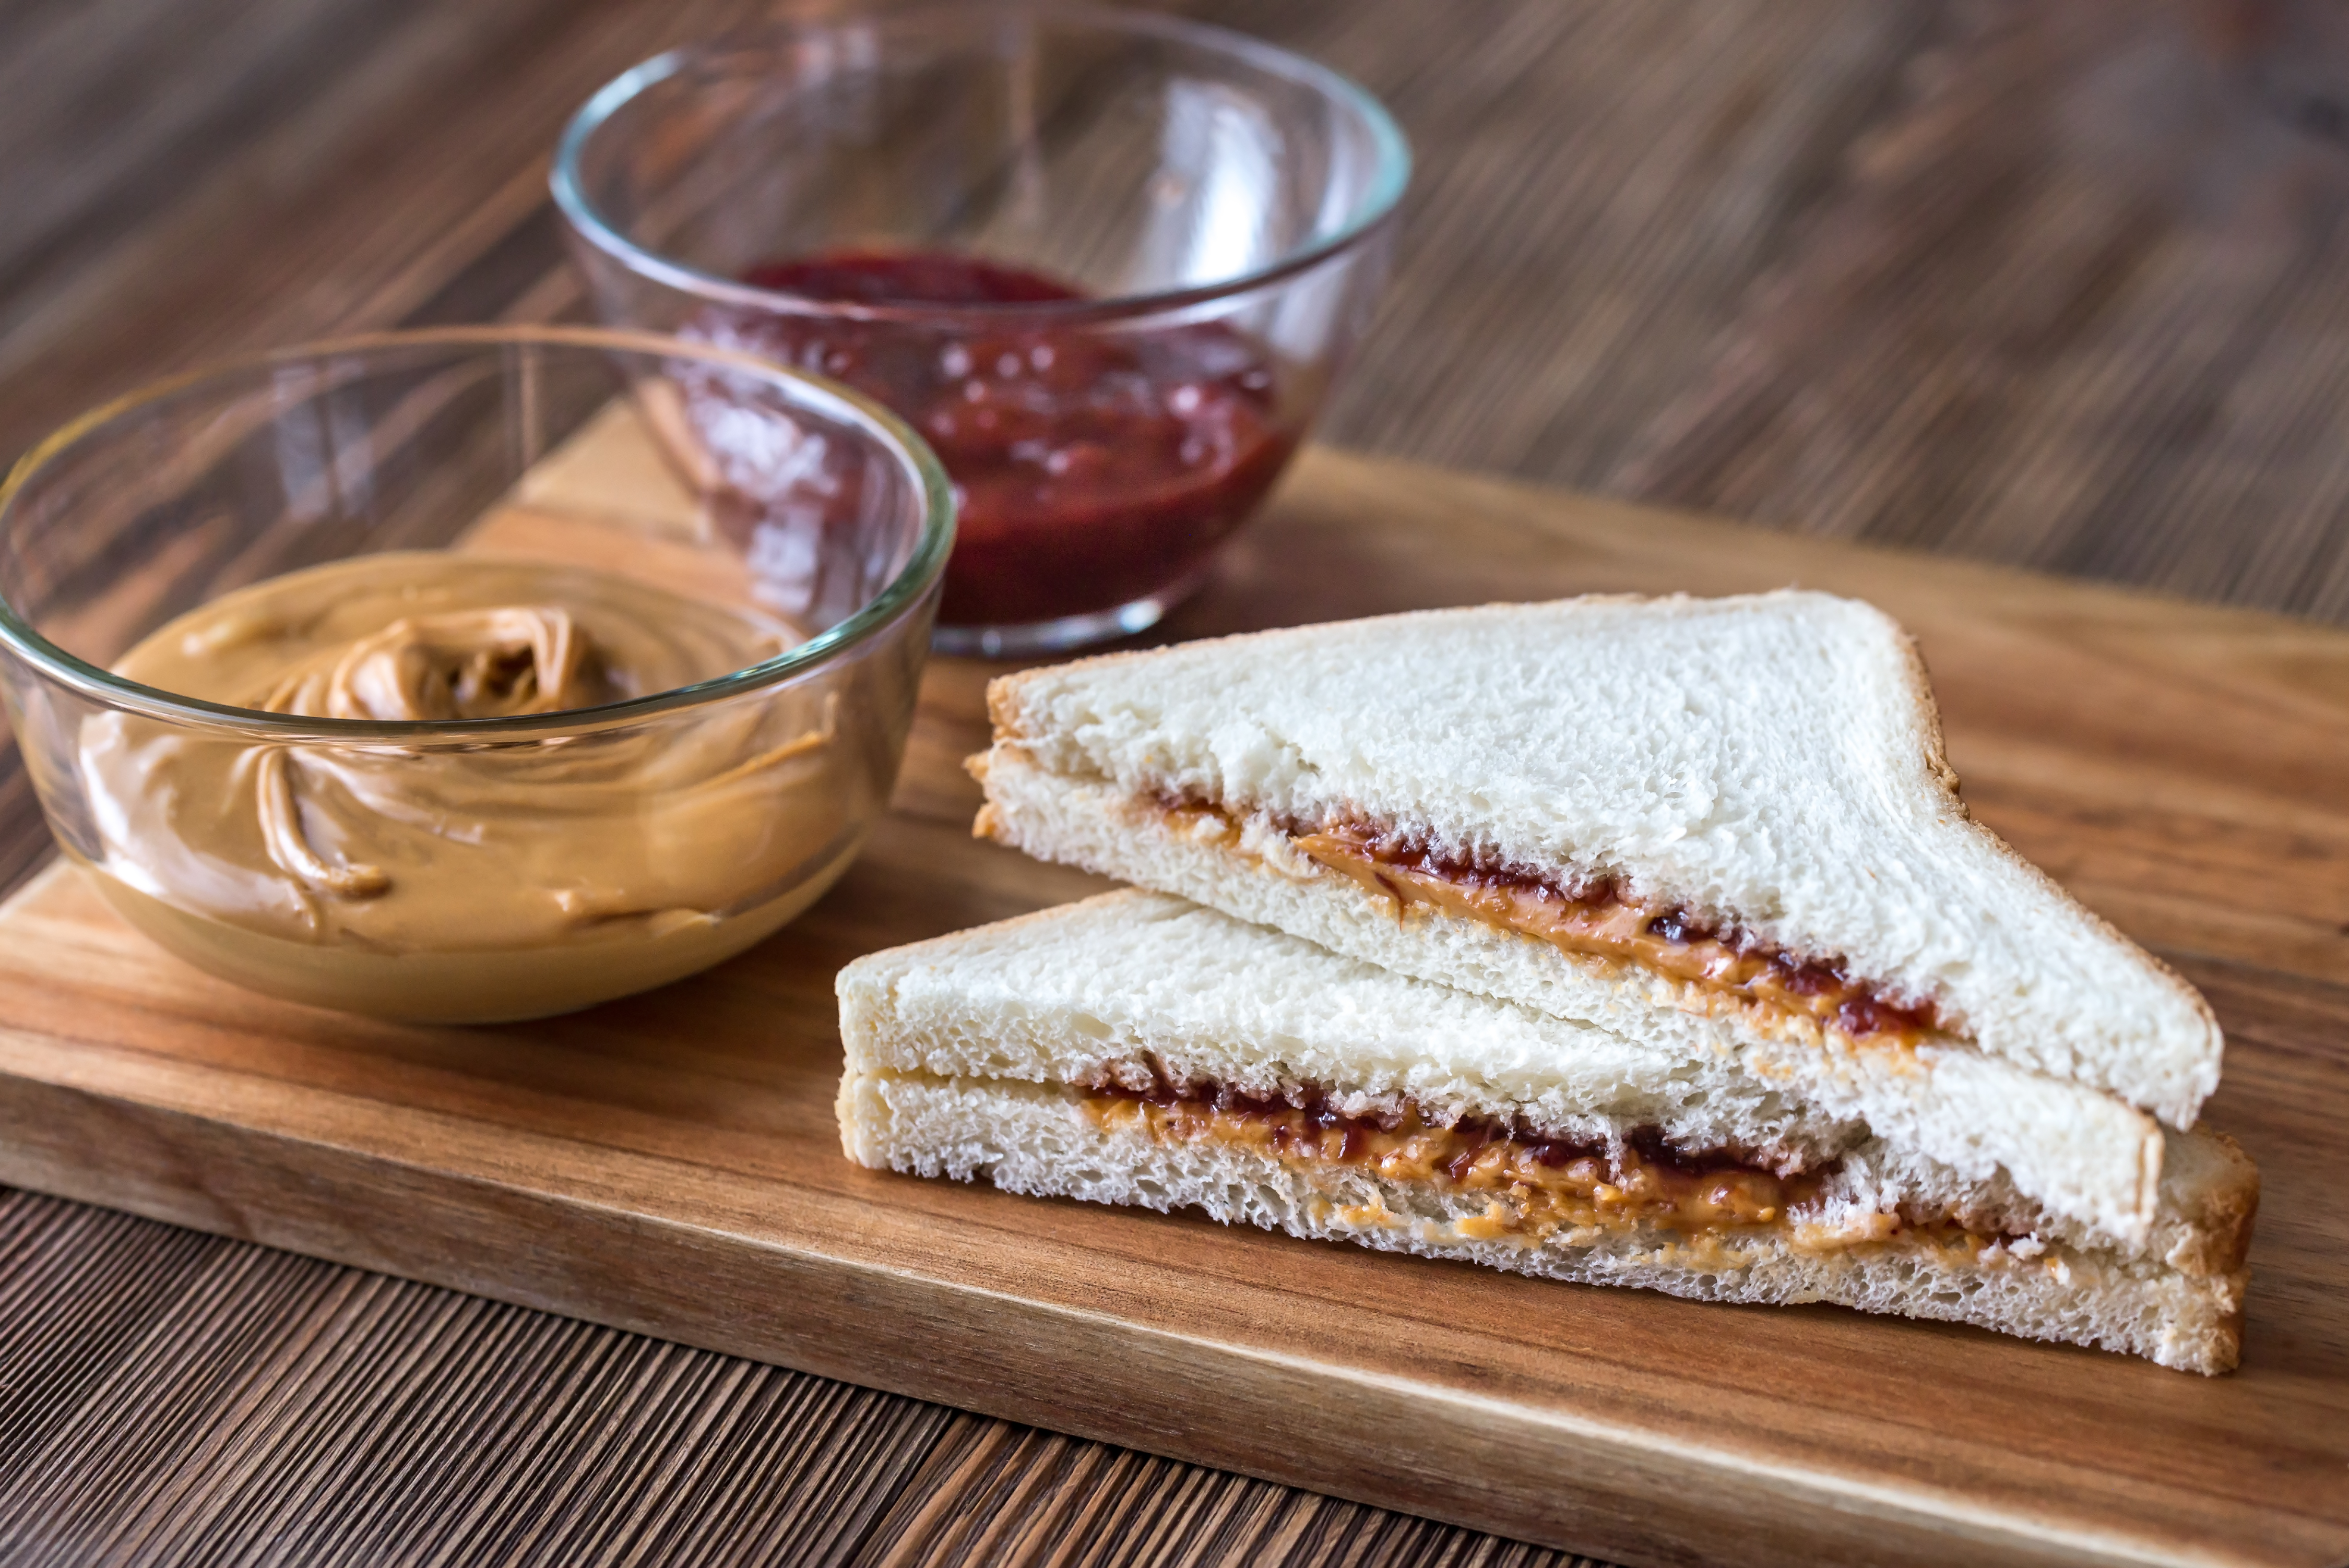 A stock image of a peanut butter and jelly sandwich